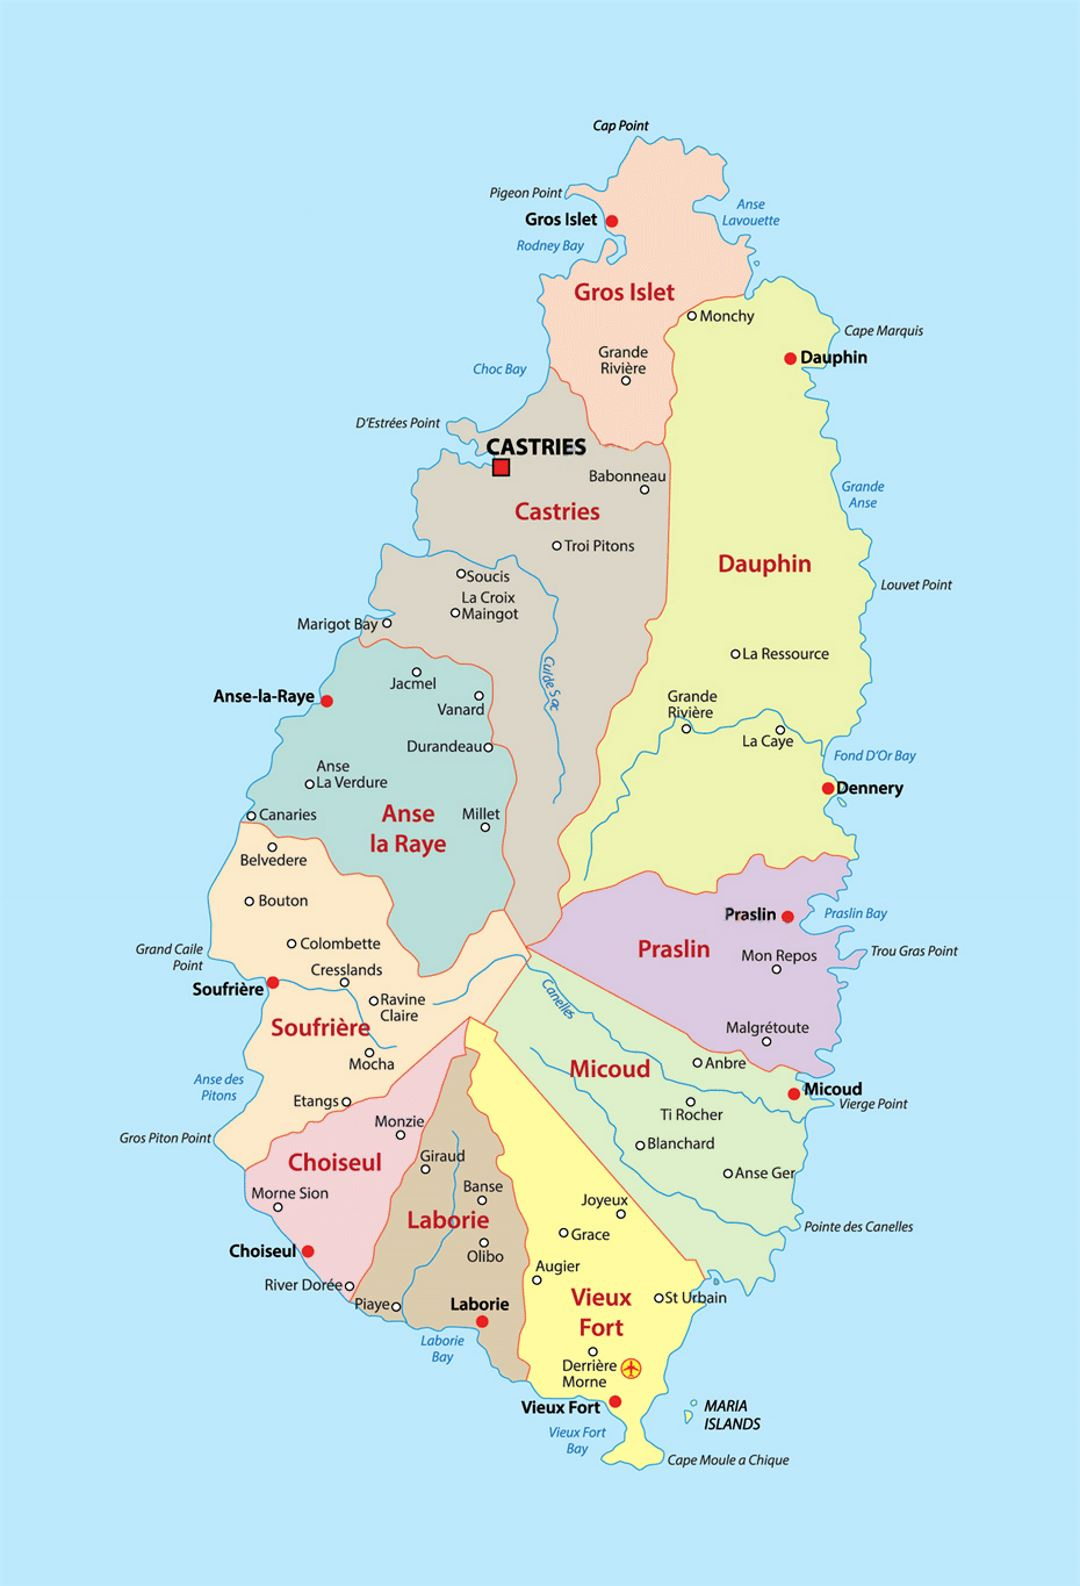 Detailed administrative divisions map of Saint Lucia with cities